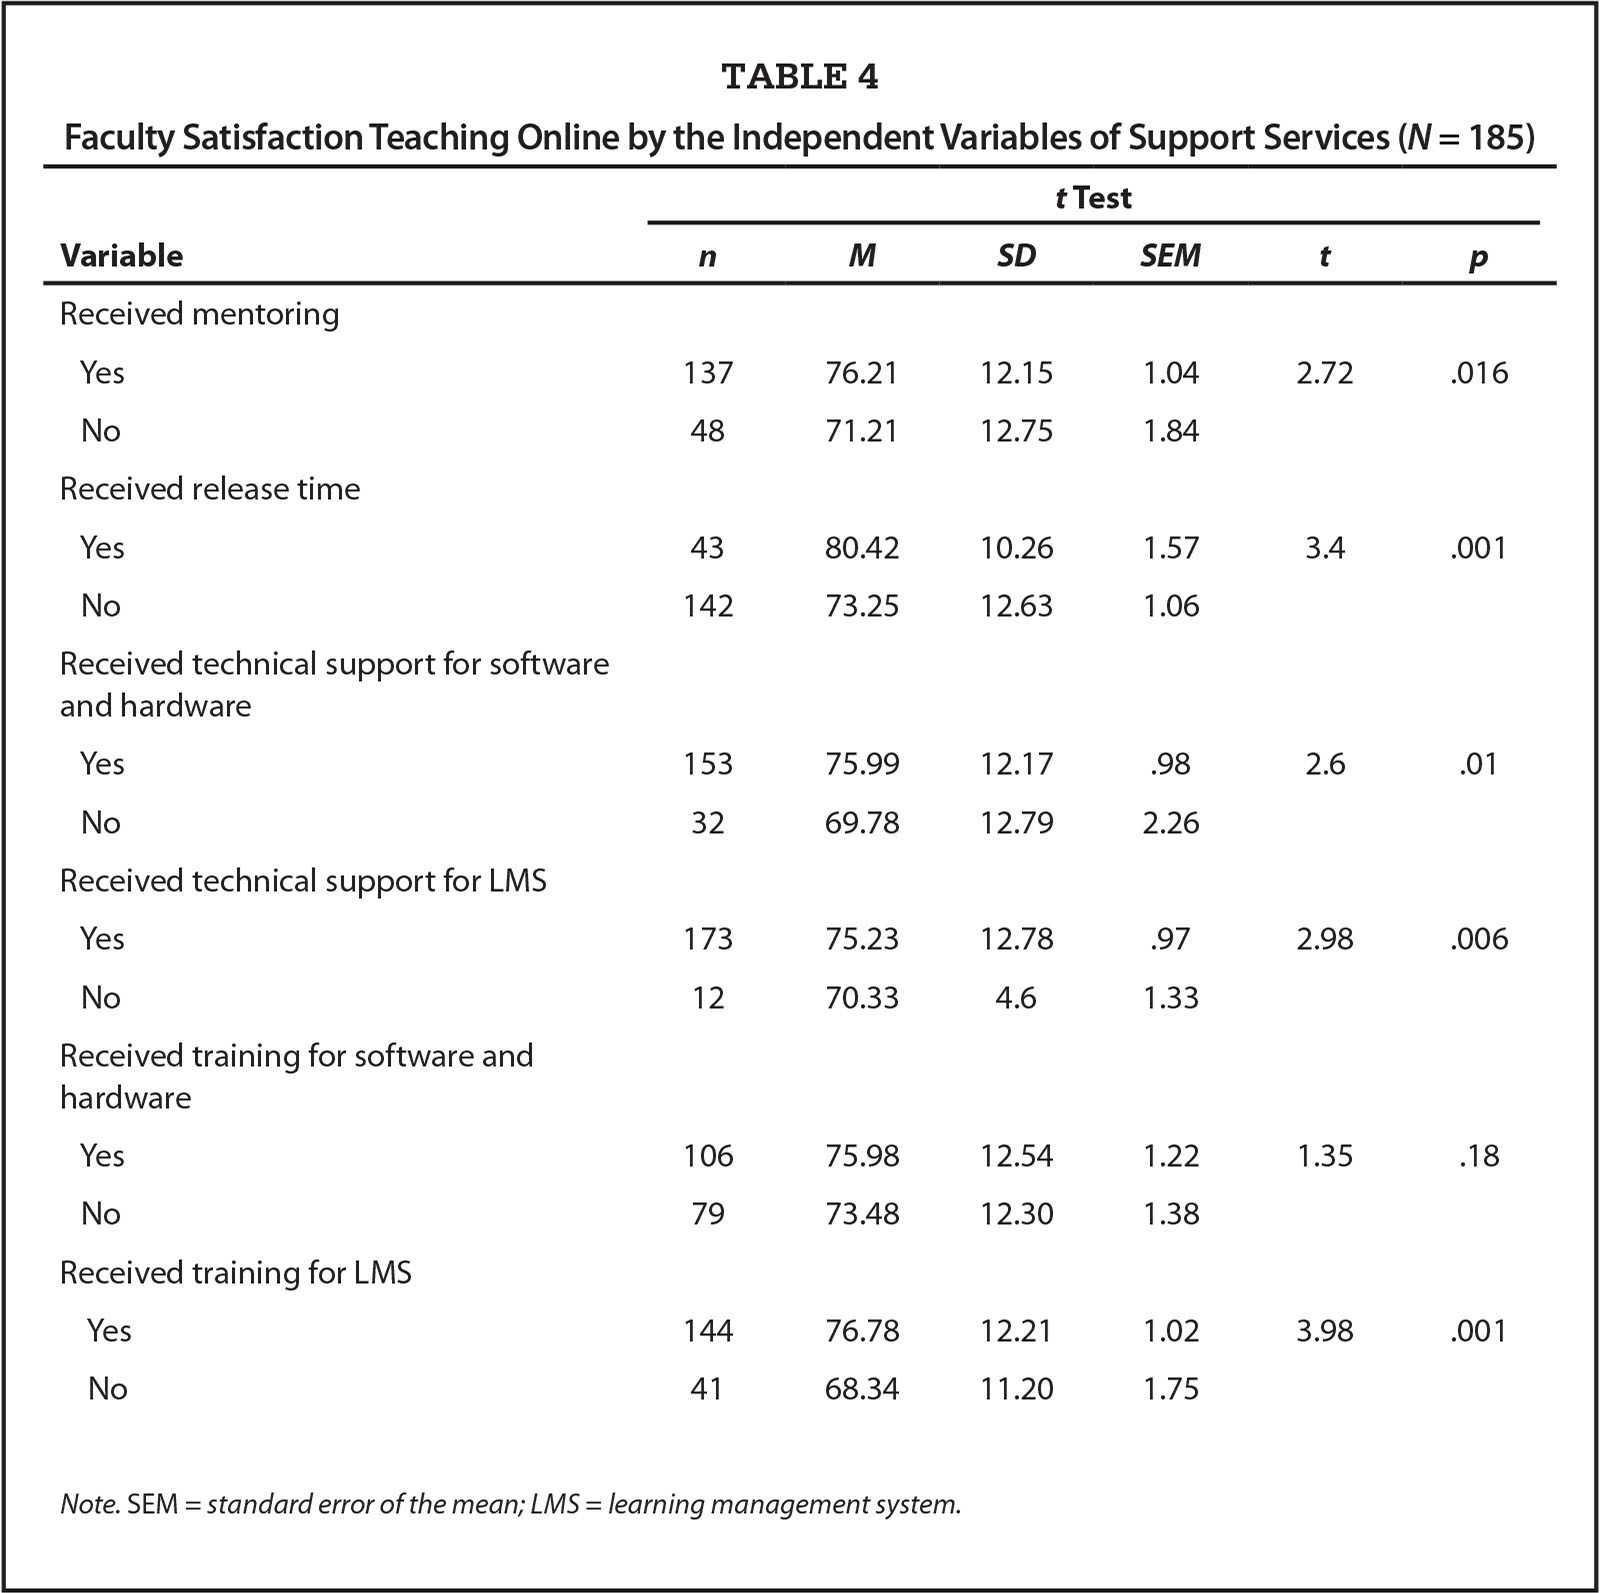 Faculty Satisfaction Teaching Online by the Independent Variables of Support Services (N = 185)